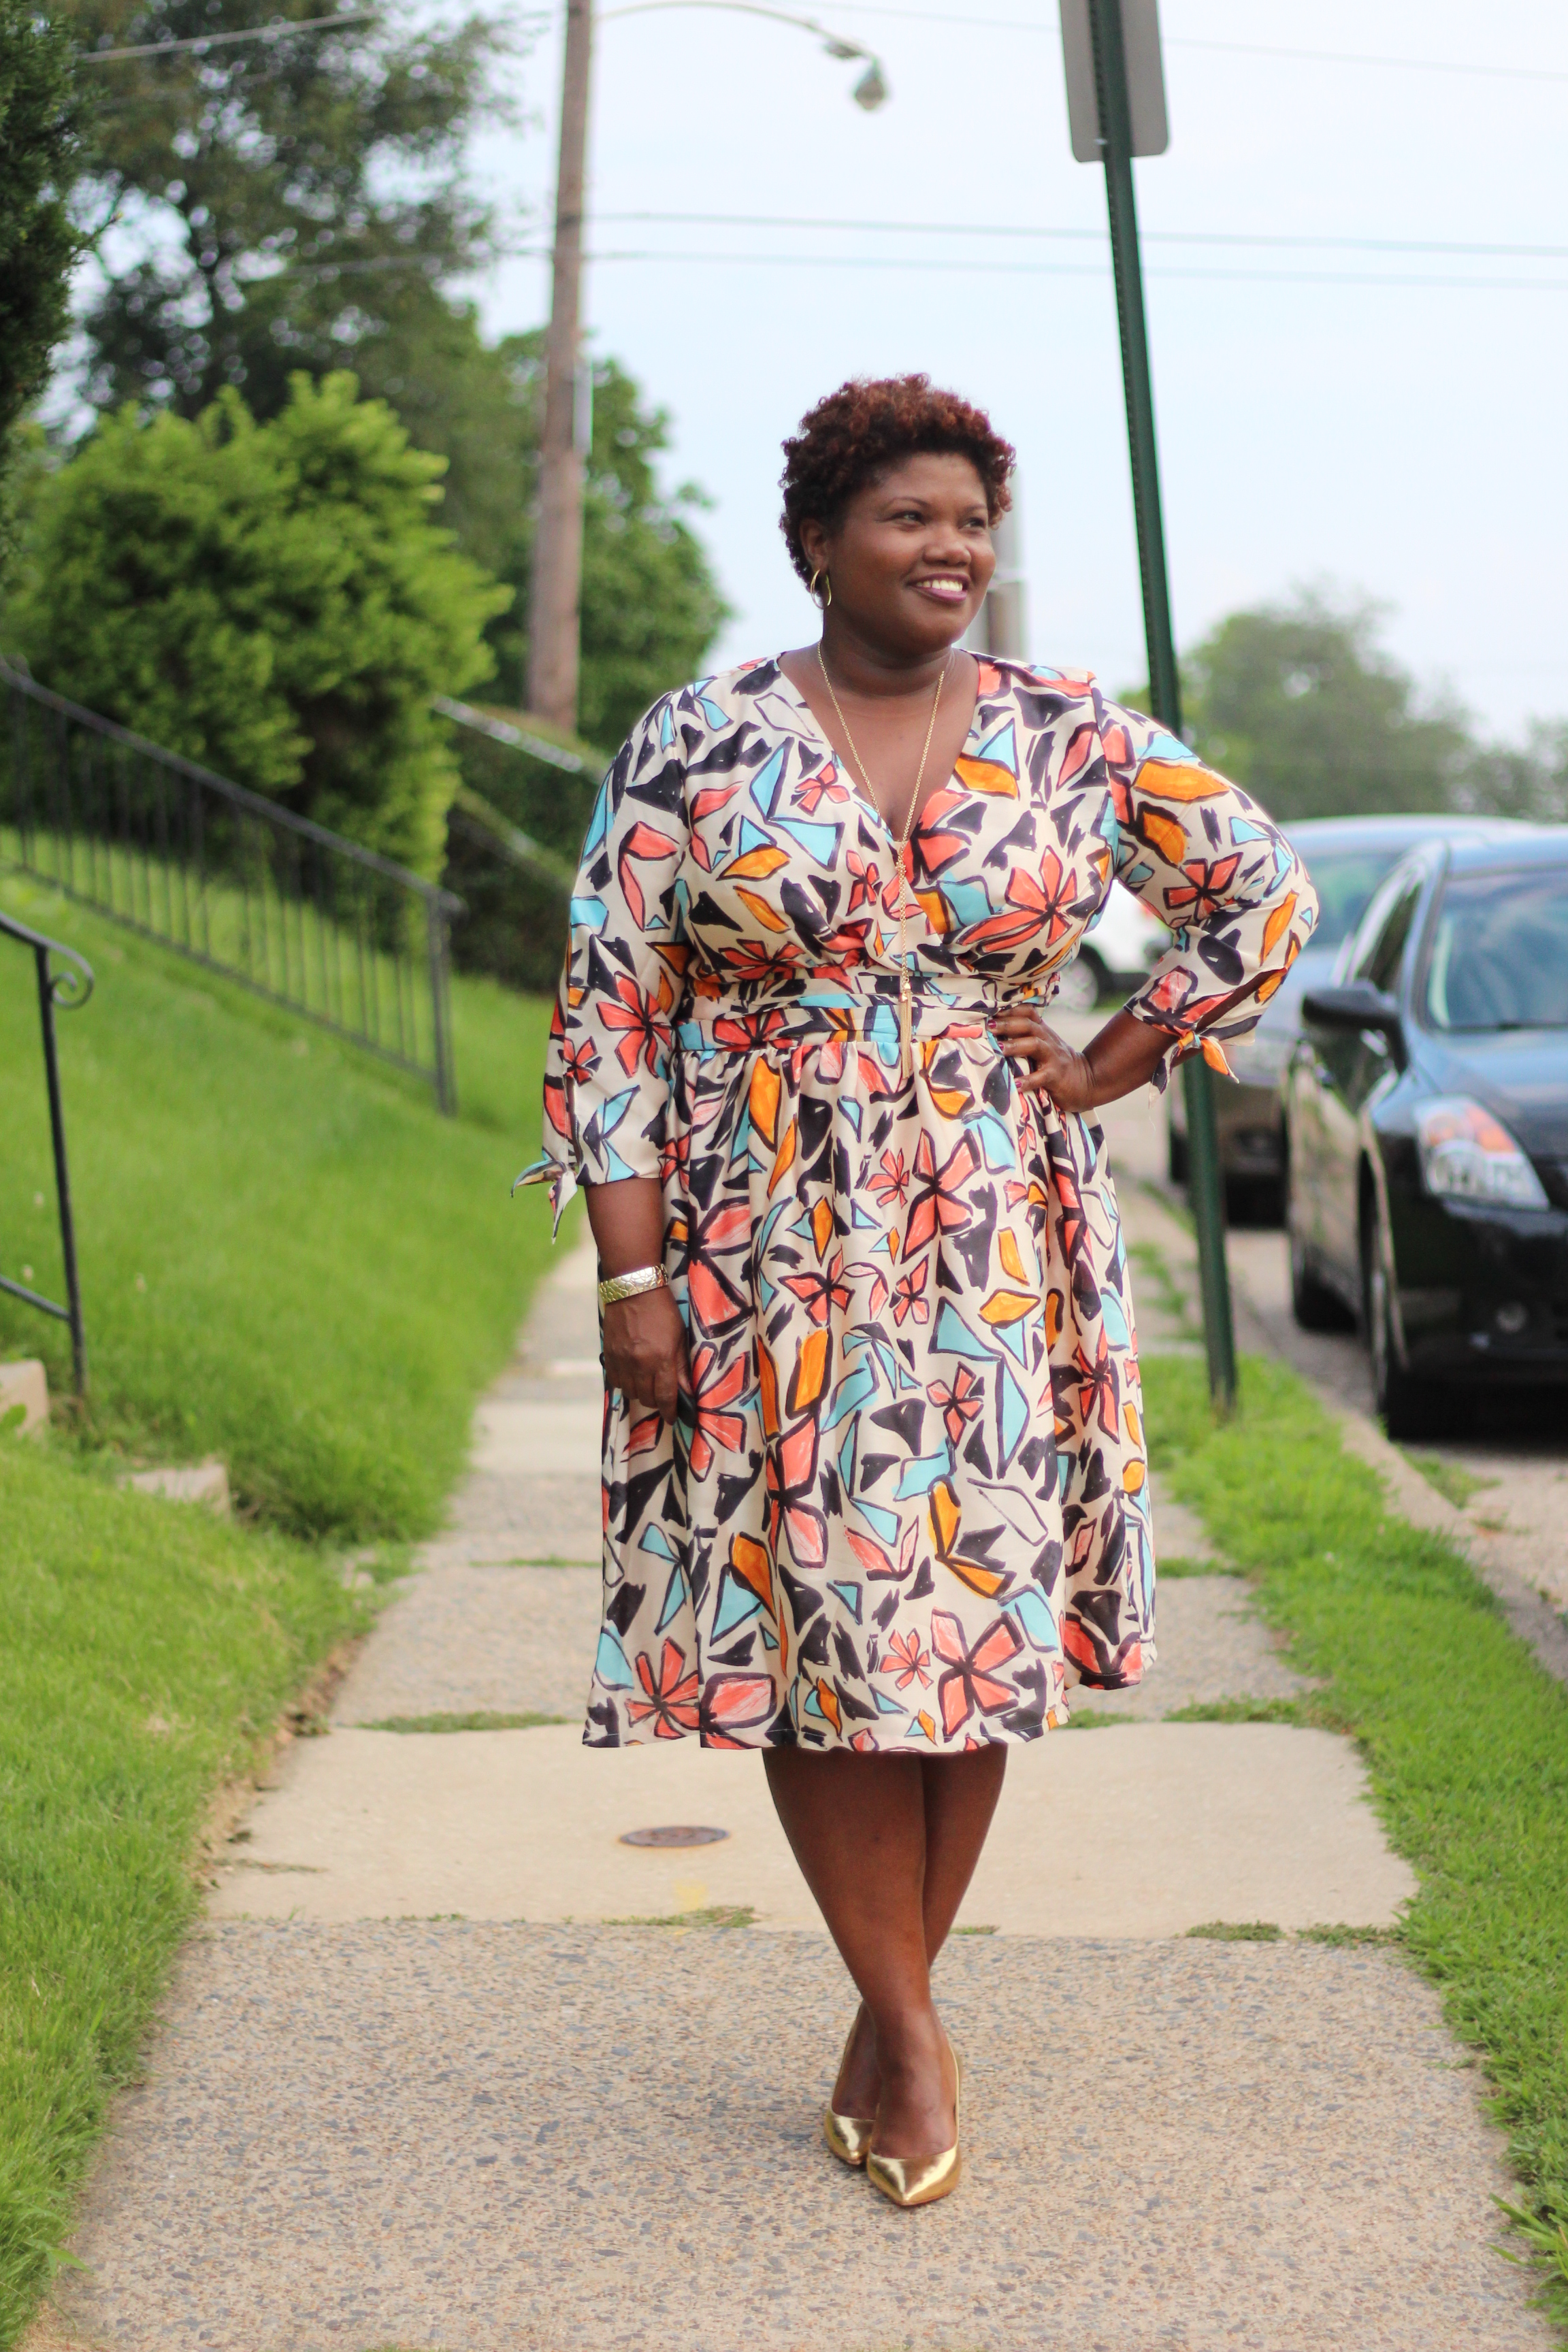 curvy, curvy girls, curvy women, curvy blogs, curvy bloggers, plus size dresses, wrap dresses, eloquii, print, floral print dresses, floral print, grown and curvy woman, grown and curvy woman blog, plus size dresses, plus size blogs, plus size bloggers, fat blogs, fat bloggers